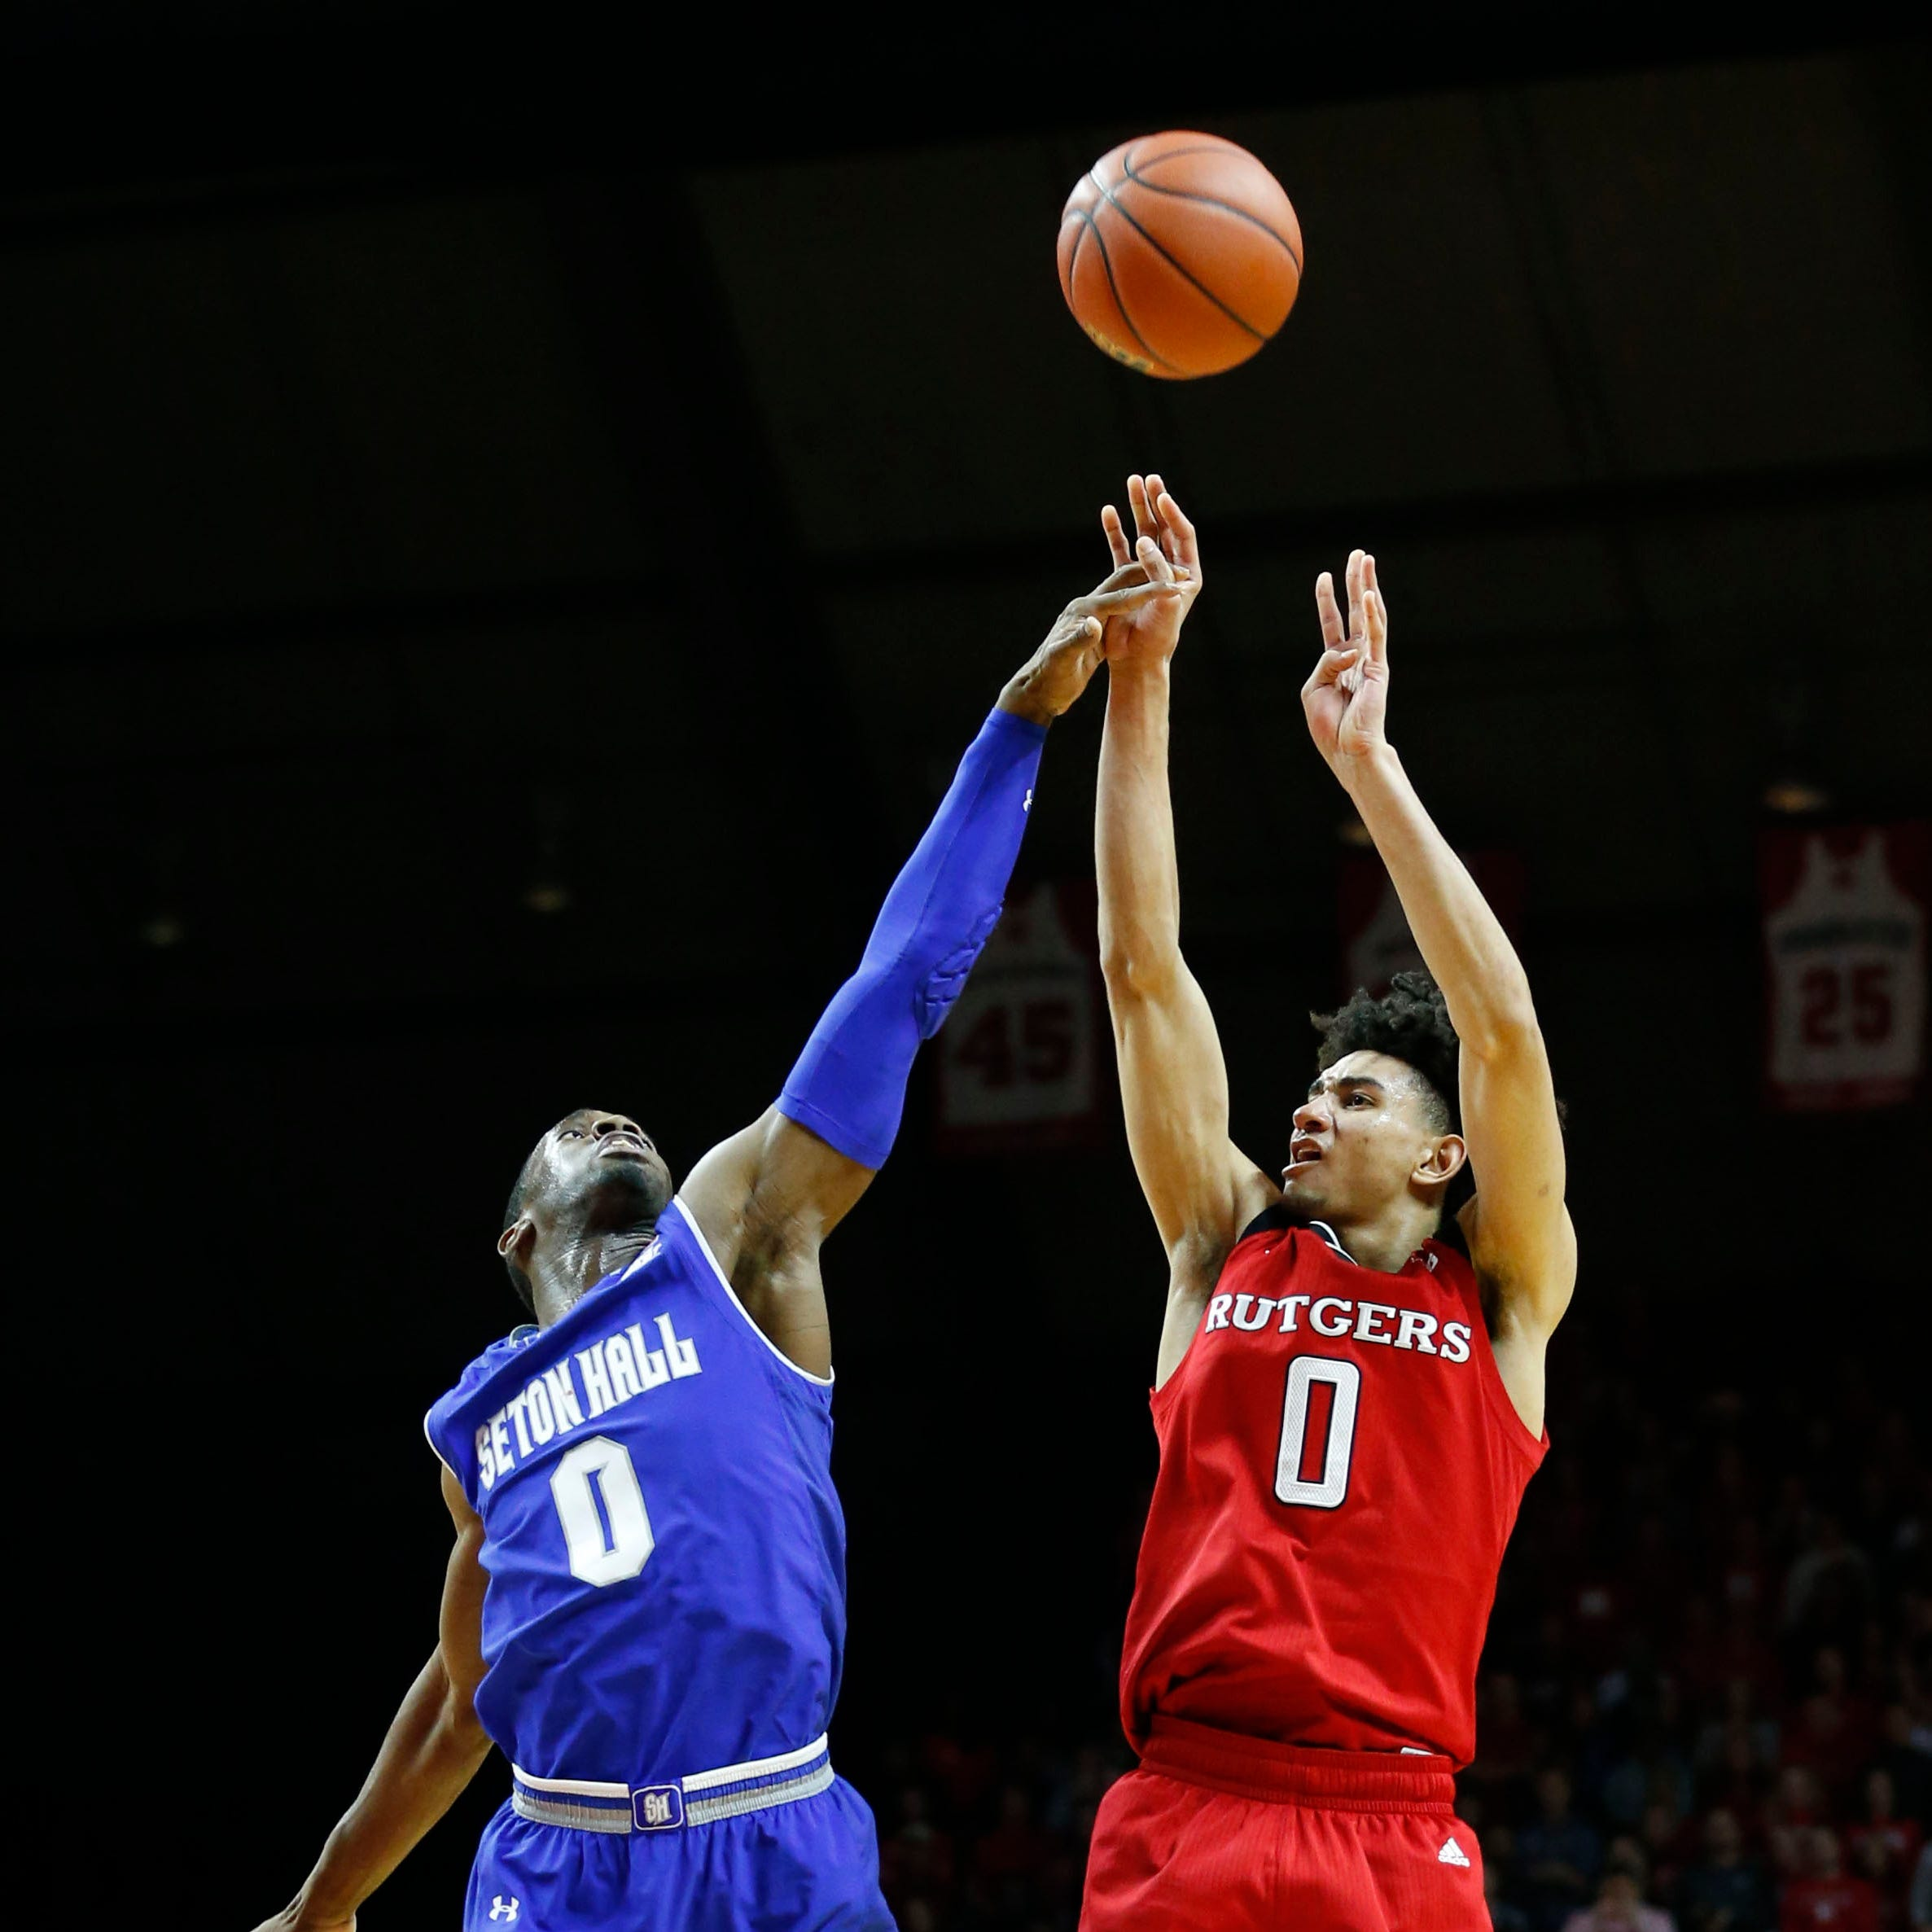 Rutgers-Seton Hall: Opinion, info on the battle for the Boardwalk Trophy